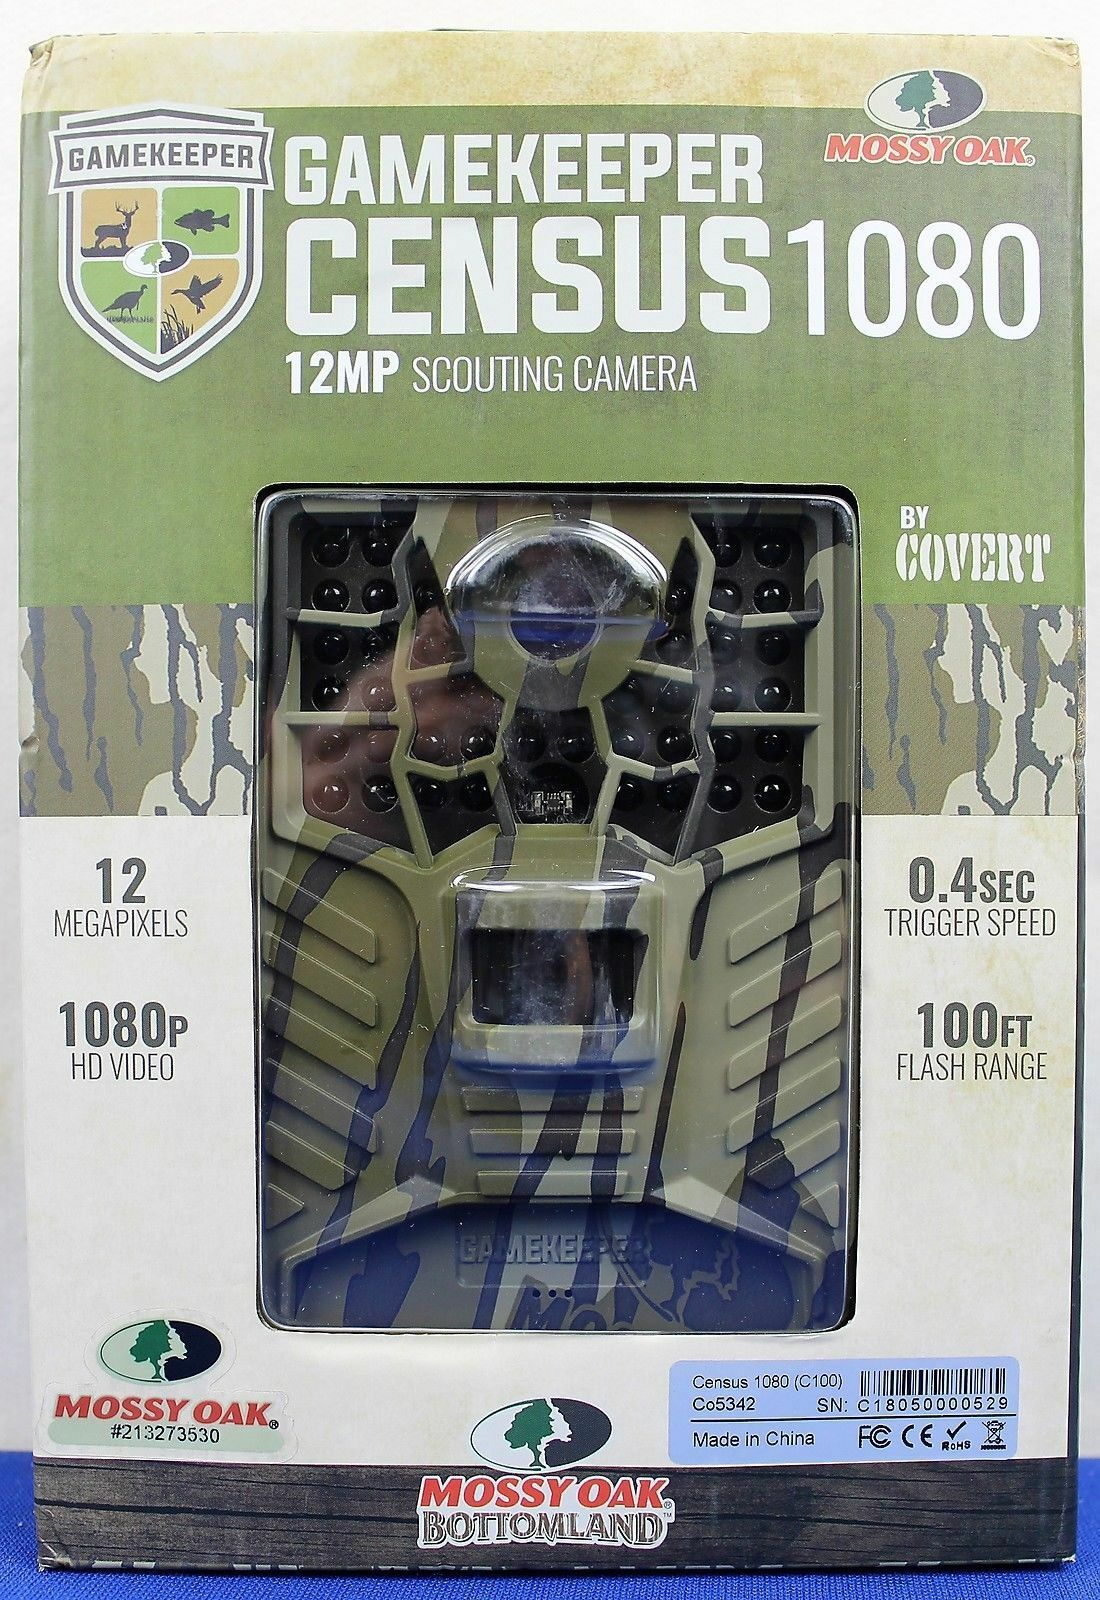 NEW Covert 1080 Mossy Oak Gamekeeper Census 1080 Covert  12MP Scouting Camera Co5342 ae2873